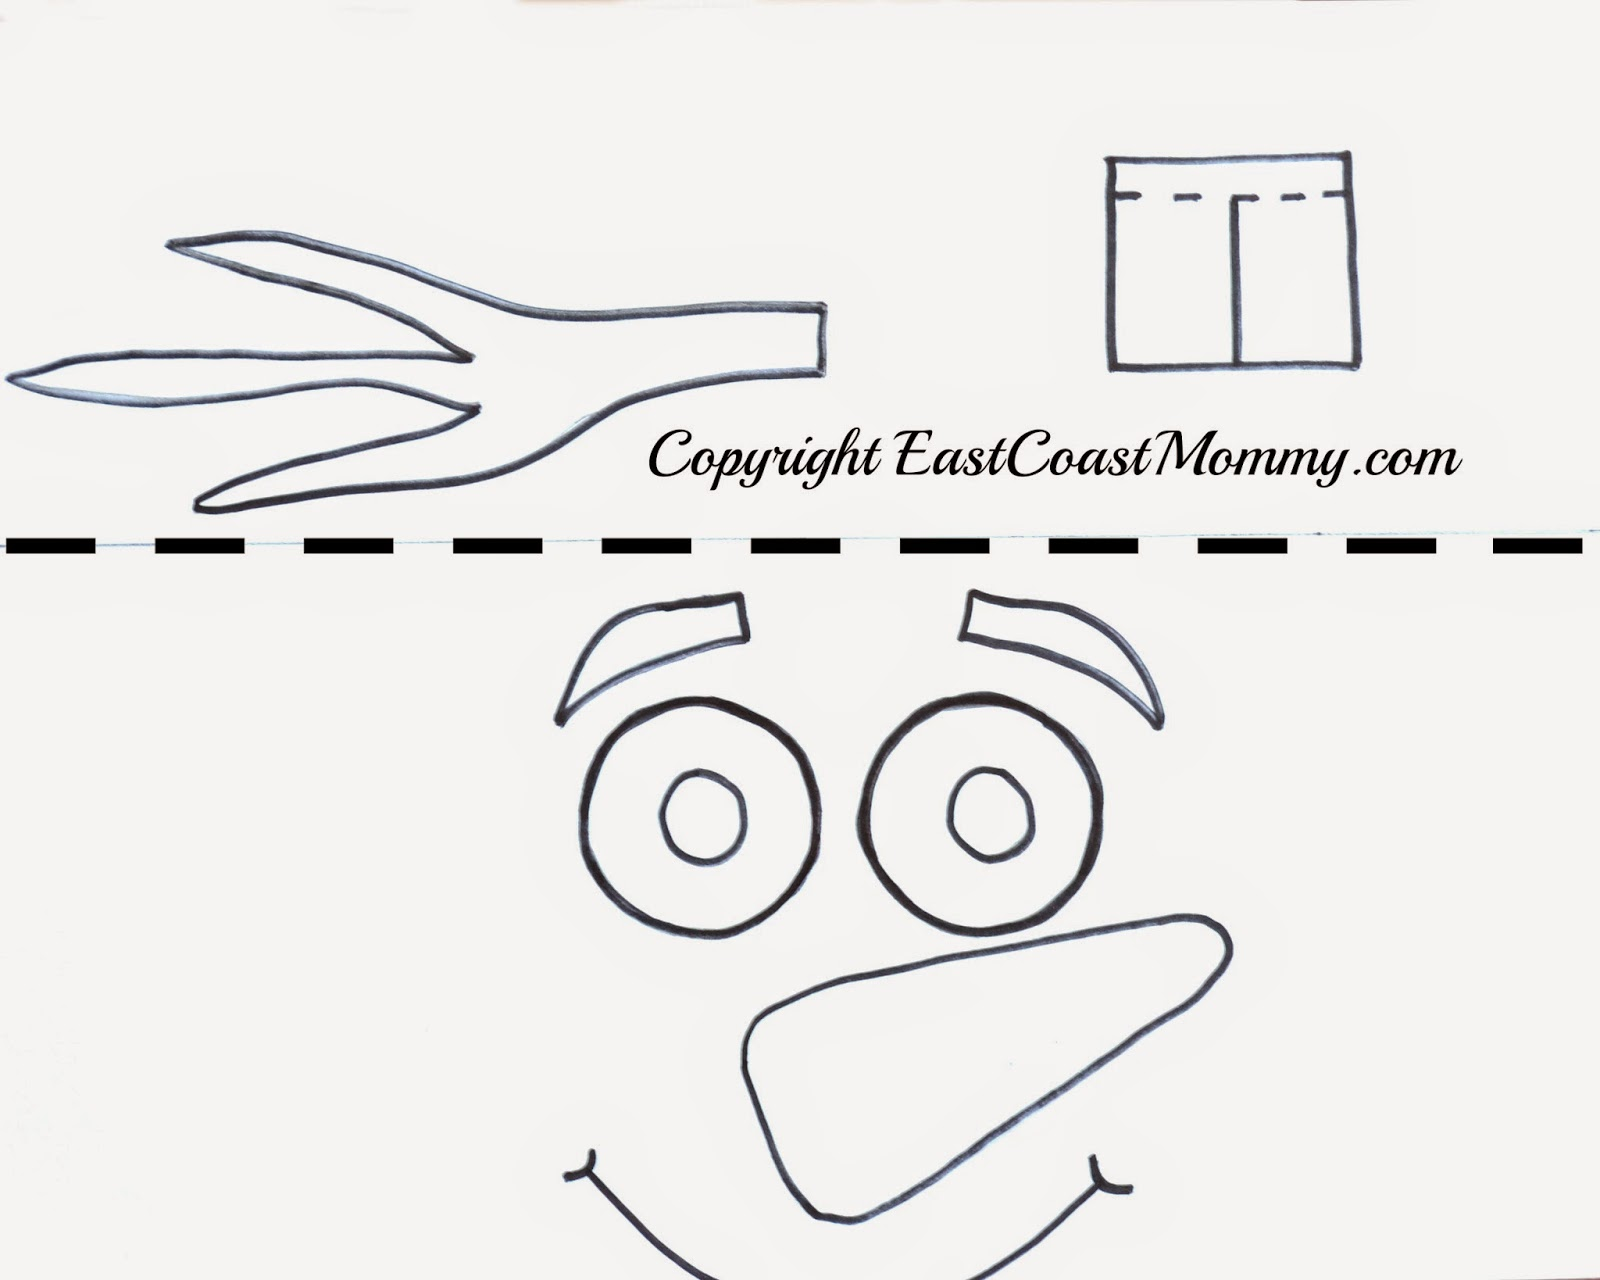 East coast mommy olaf hat free printable template 1 download a pdf version of the olaf hat i designed here and print it onto cardstock pronofoot35fo Gallery